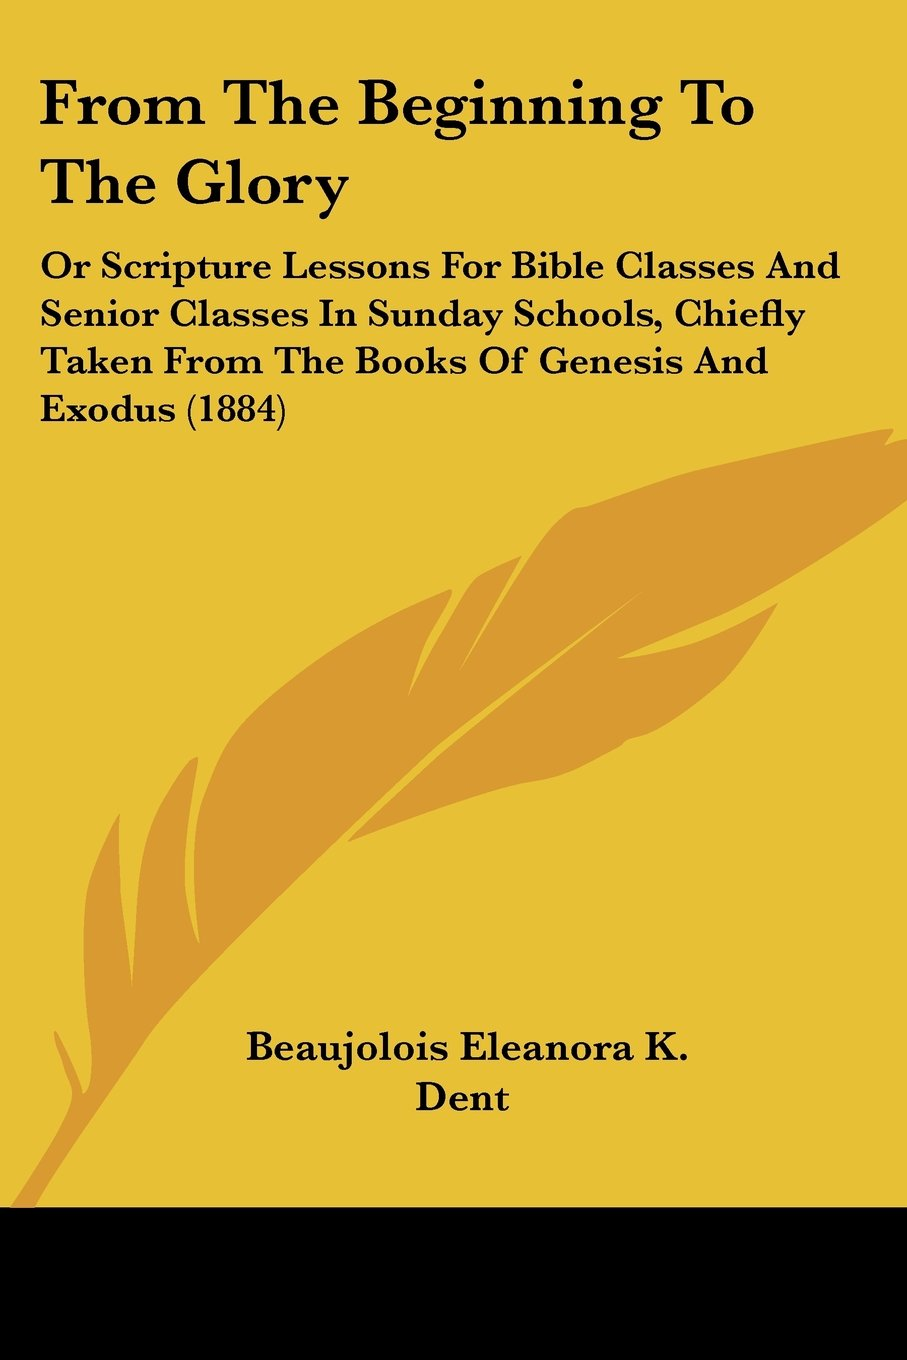 From The Beginning To The Glory: Or Scripture Lessons For Bible Classes And Senior Classes In Sunday Schools, Chiefly Taken From The Books Of Genesis And Exodus (1884) PDF ePub fb2 book